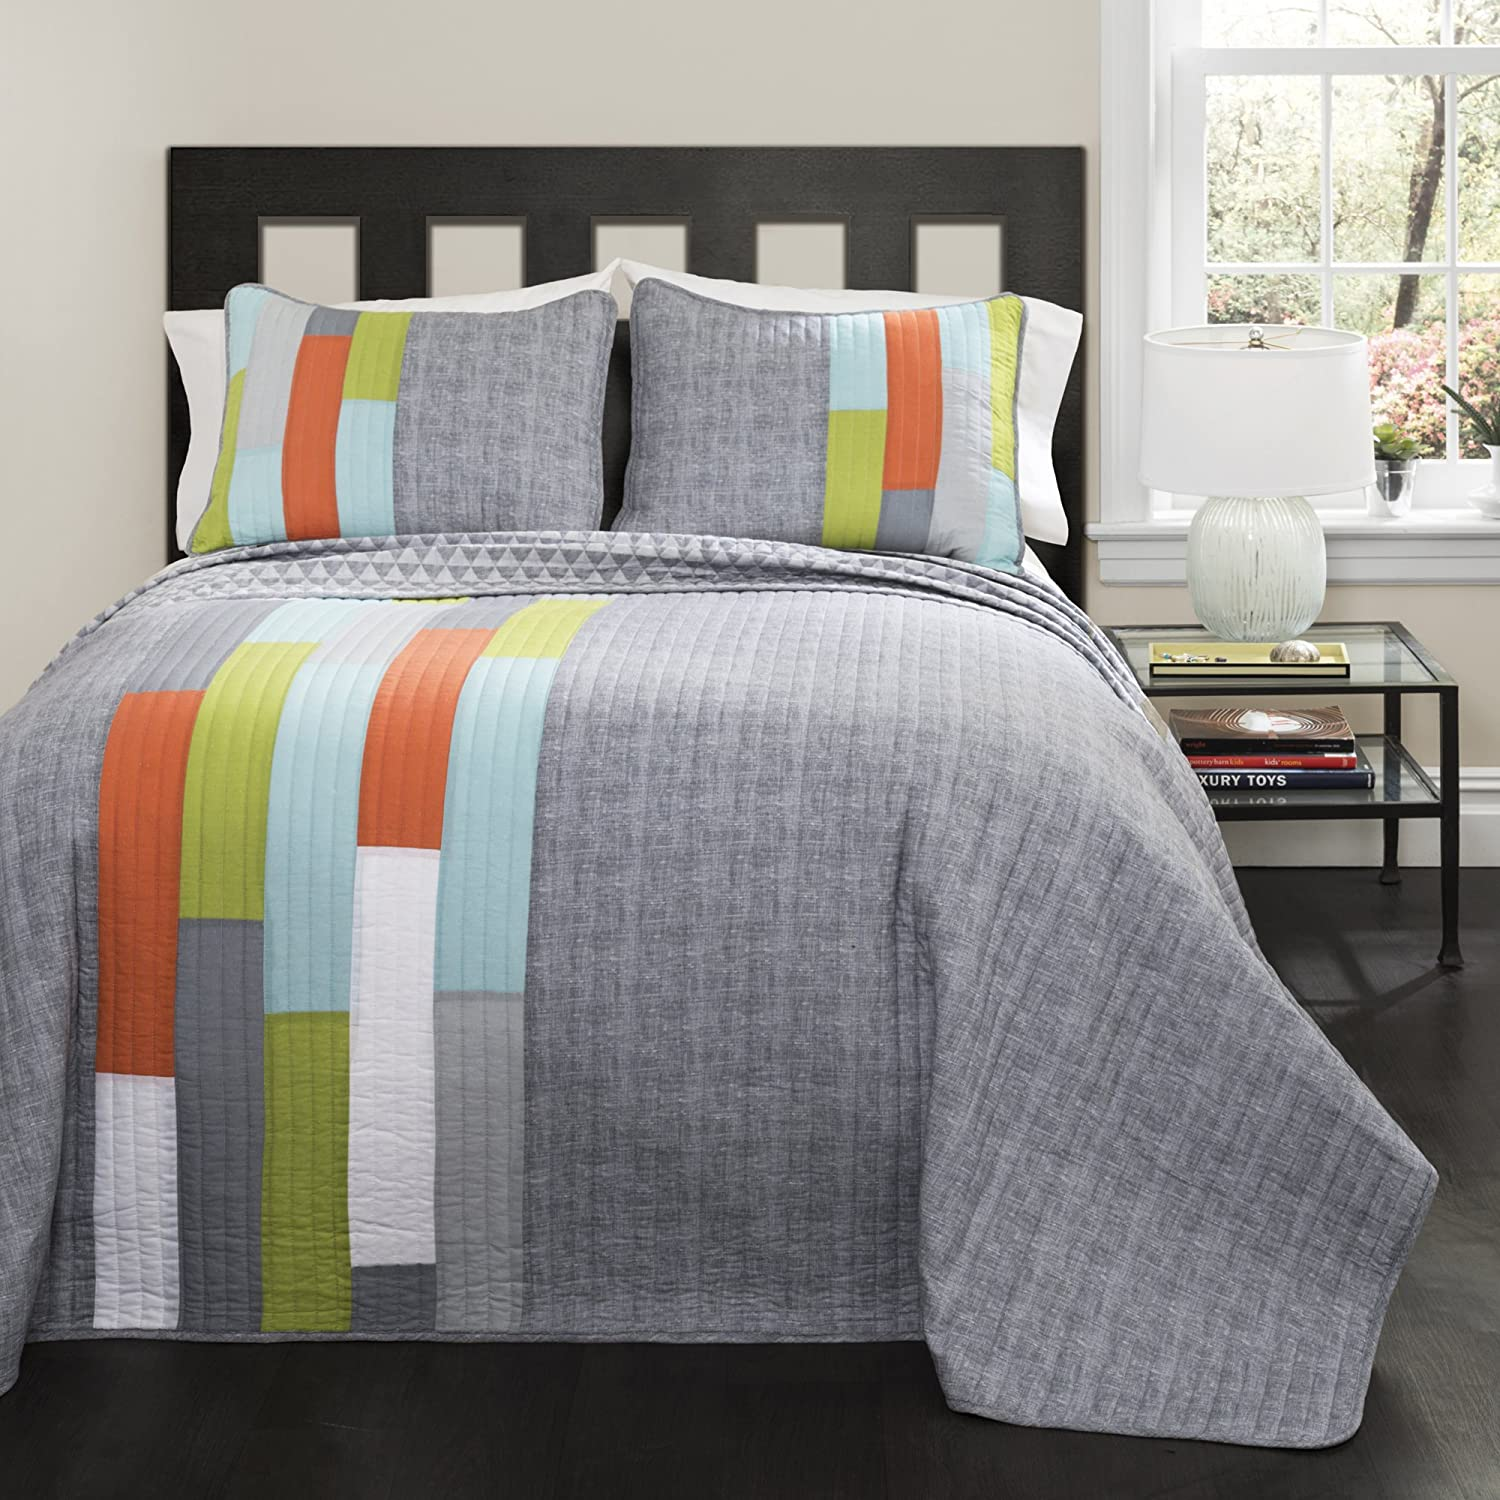 Lush Decor Shelly Stripe Quilt | Modern Geometric Pattern Reversible 3 Piece Bedding Set-King-Gray and Orange